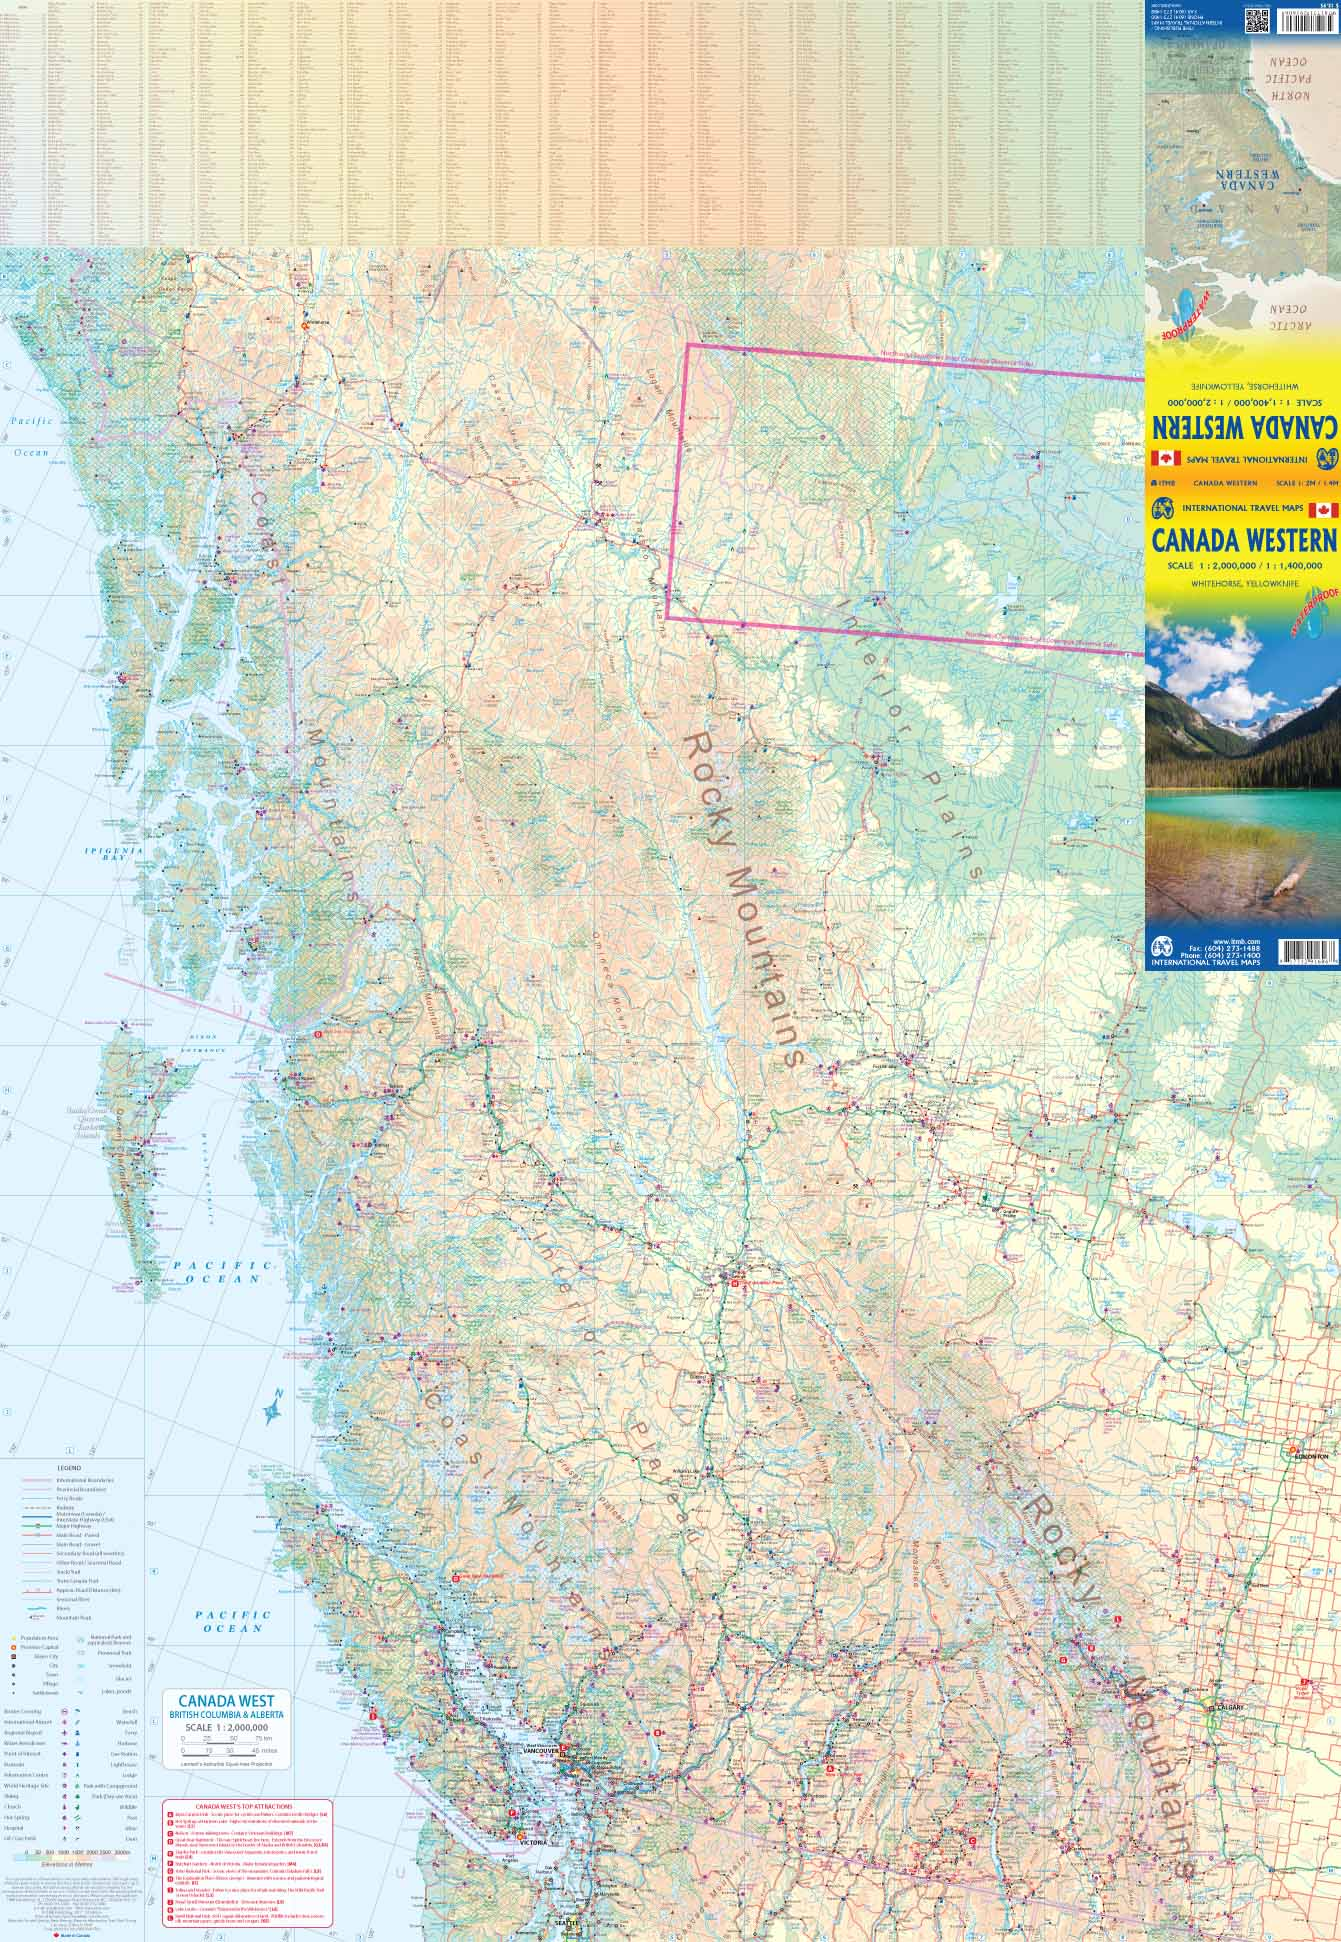 West Of Canada Map.Western Canada Road Map At 1 2 And 1 1 400 000 Itmb Publishing